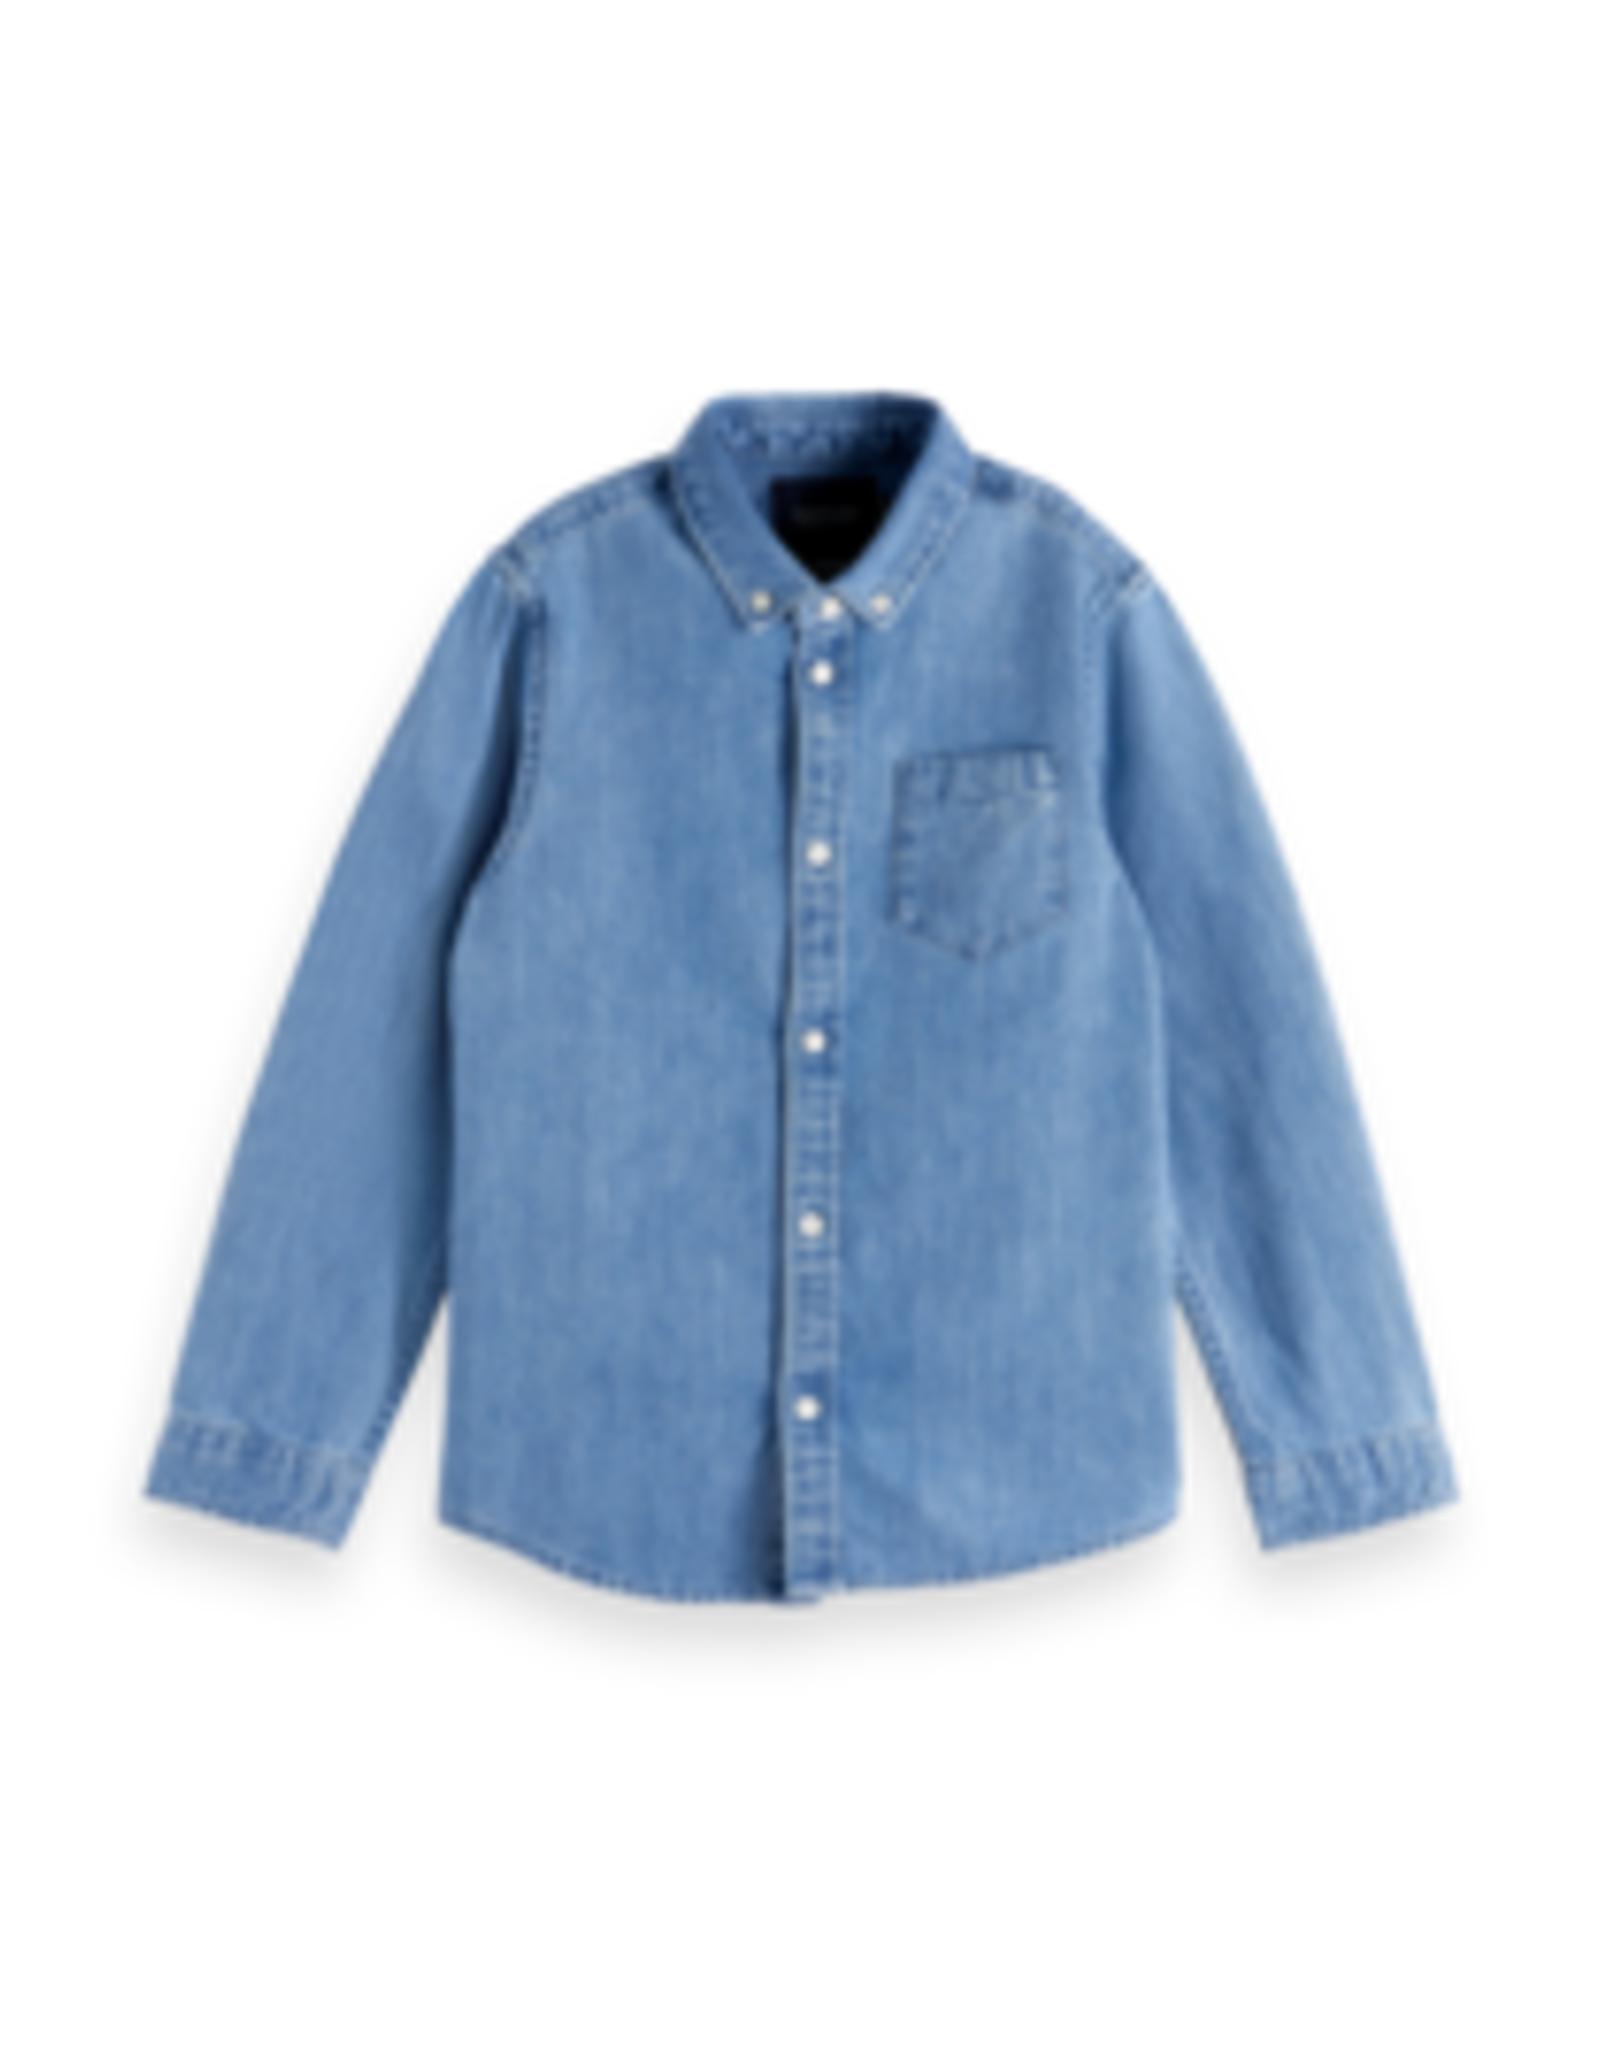 Scotch&Soda Shrunk SS21 160079 denim shirt